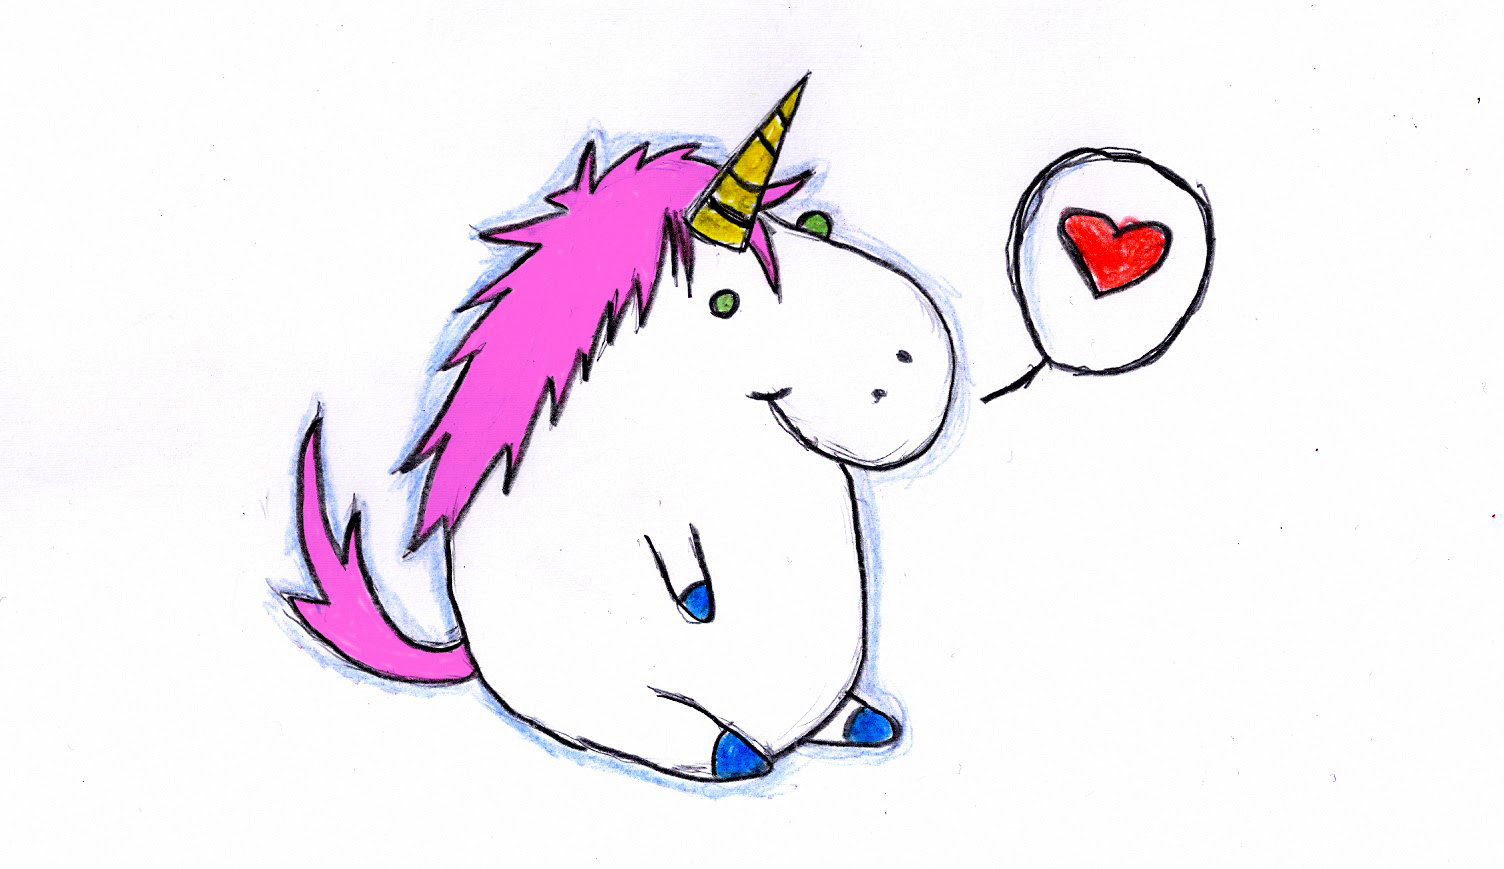 fat_unicorn_by_janno_arts d5xojr7